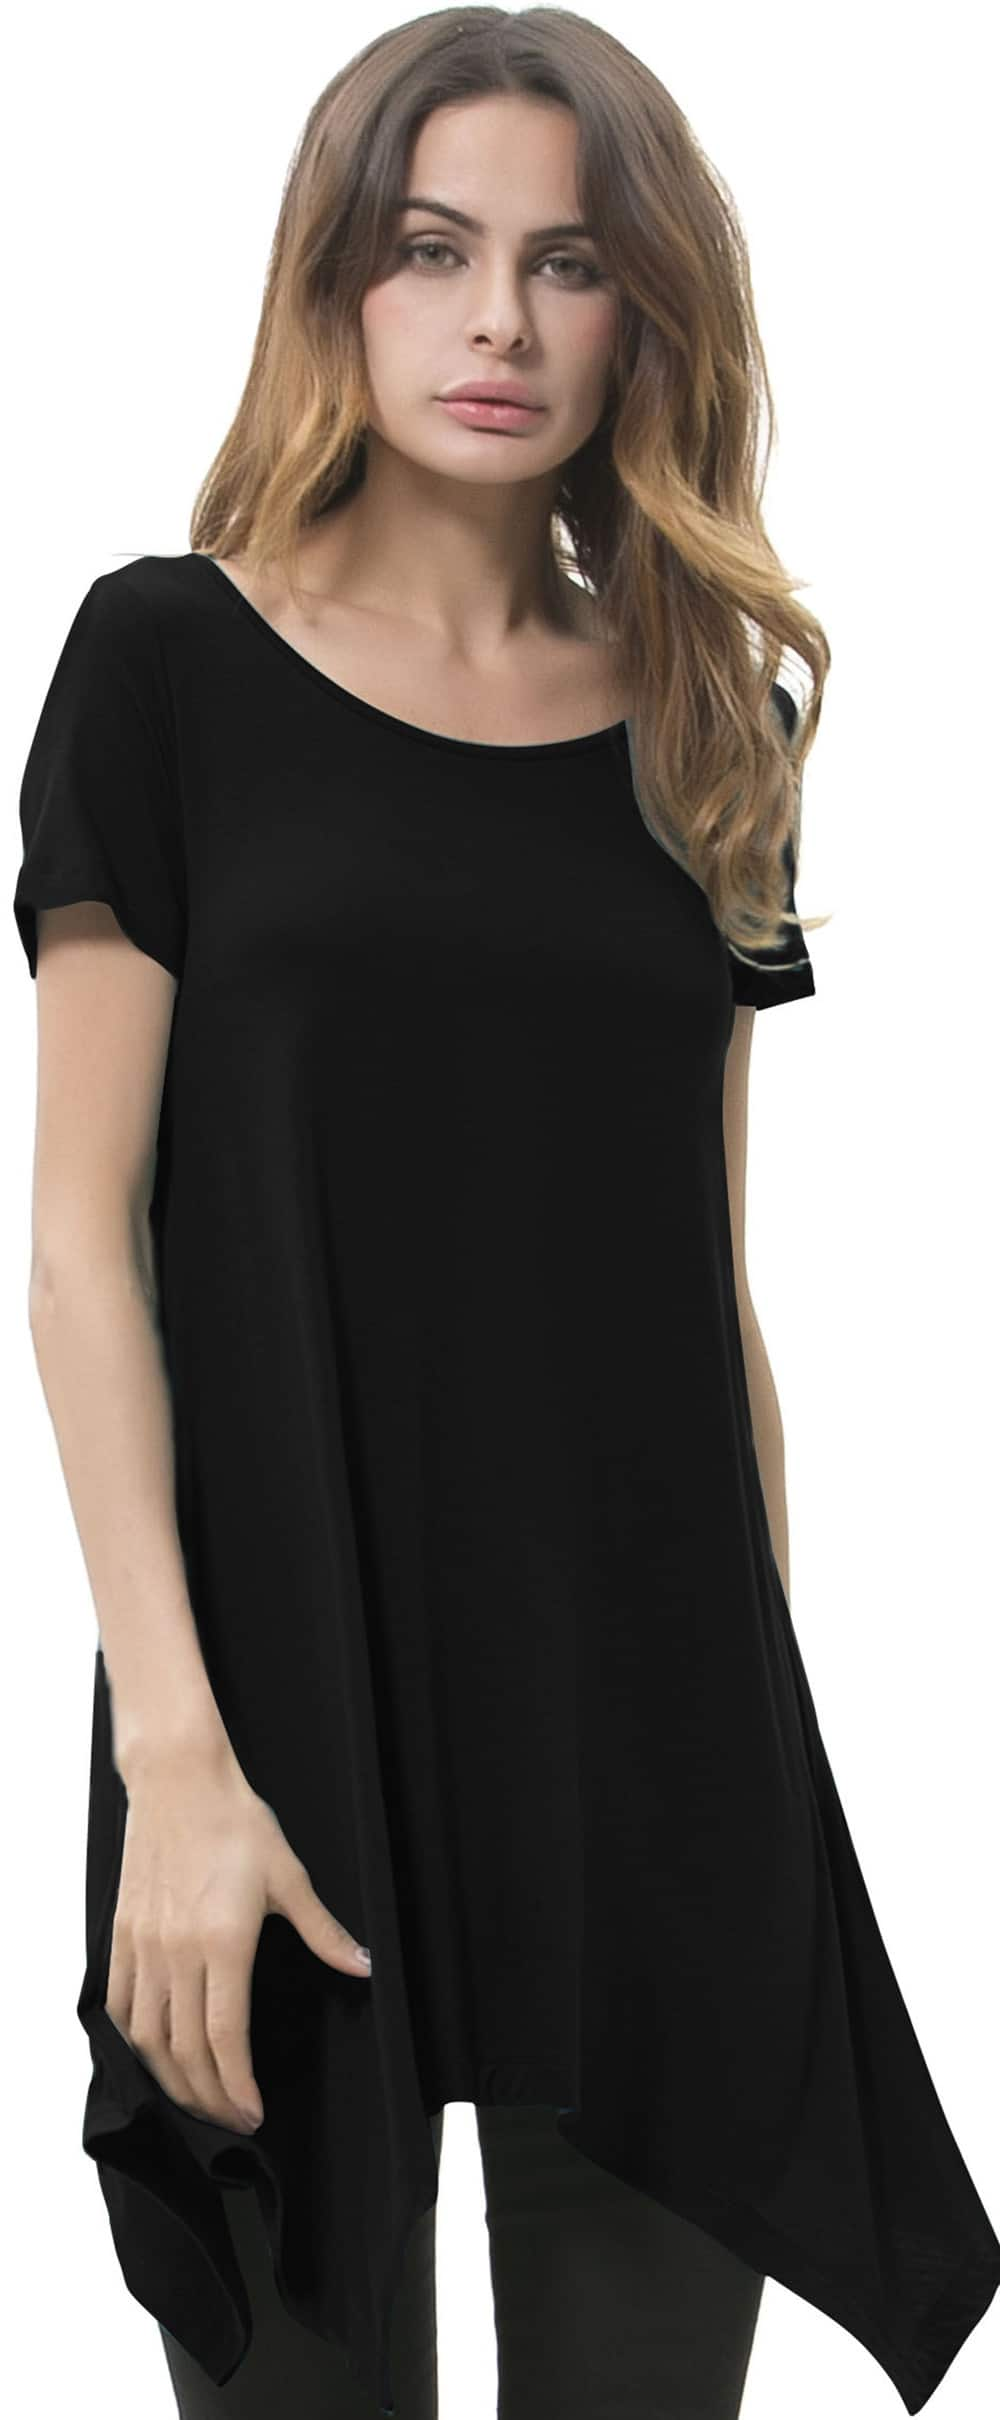 Songbai Women Swing Tunic Tops Loose Fit Comfy Flattering T Shirt Woman Clothing $11.99